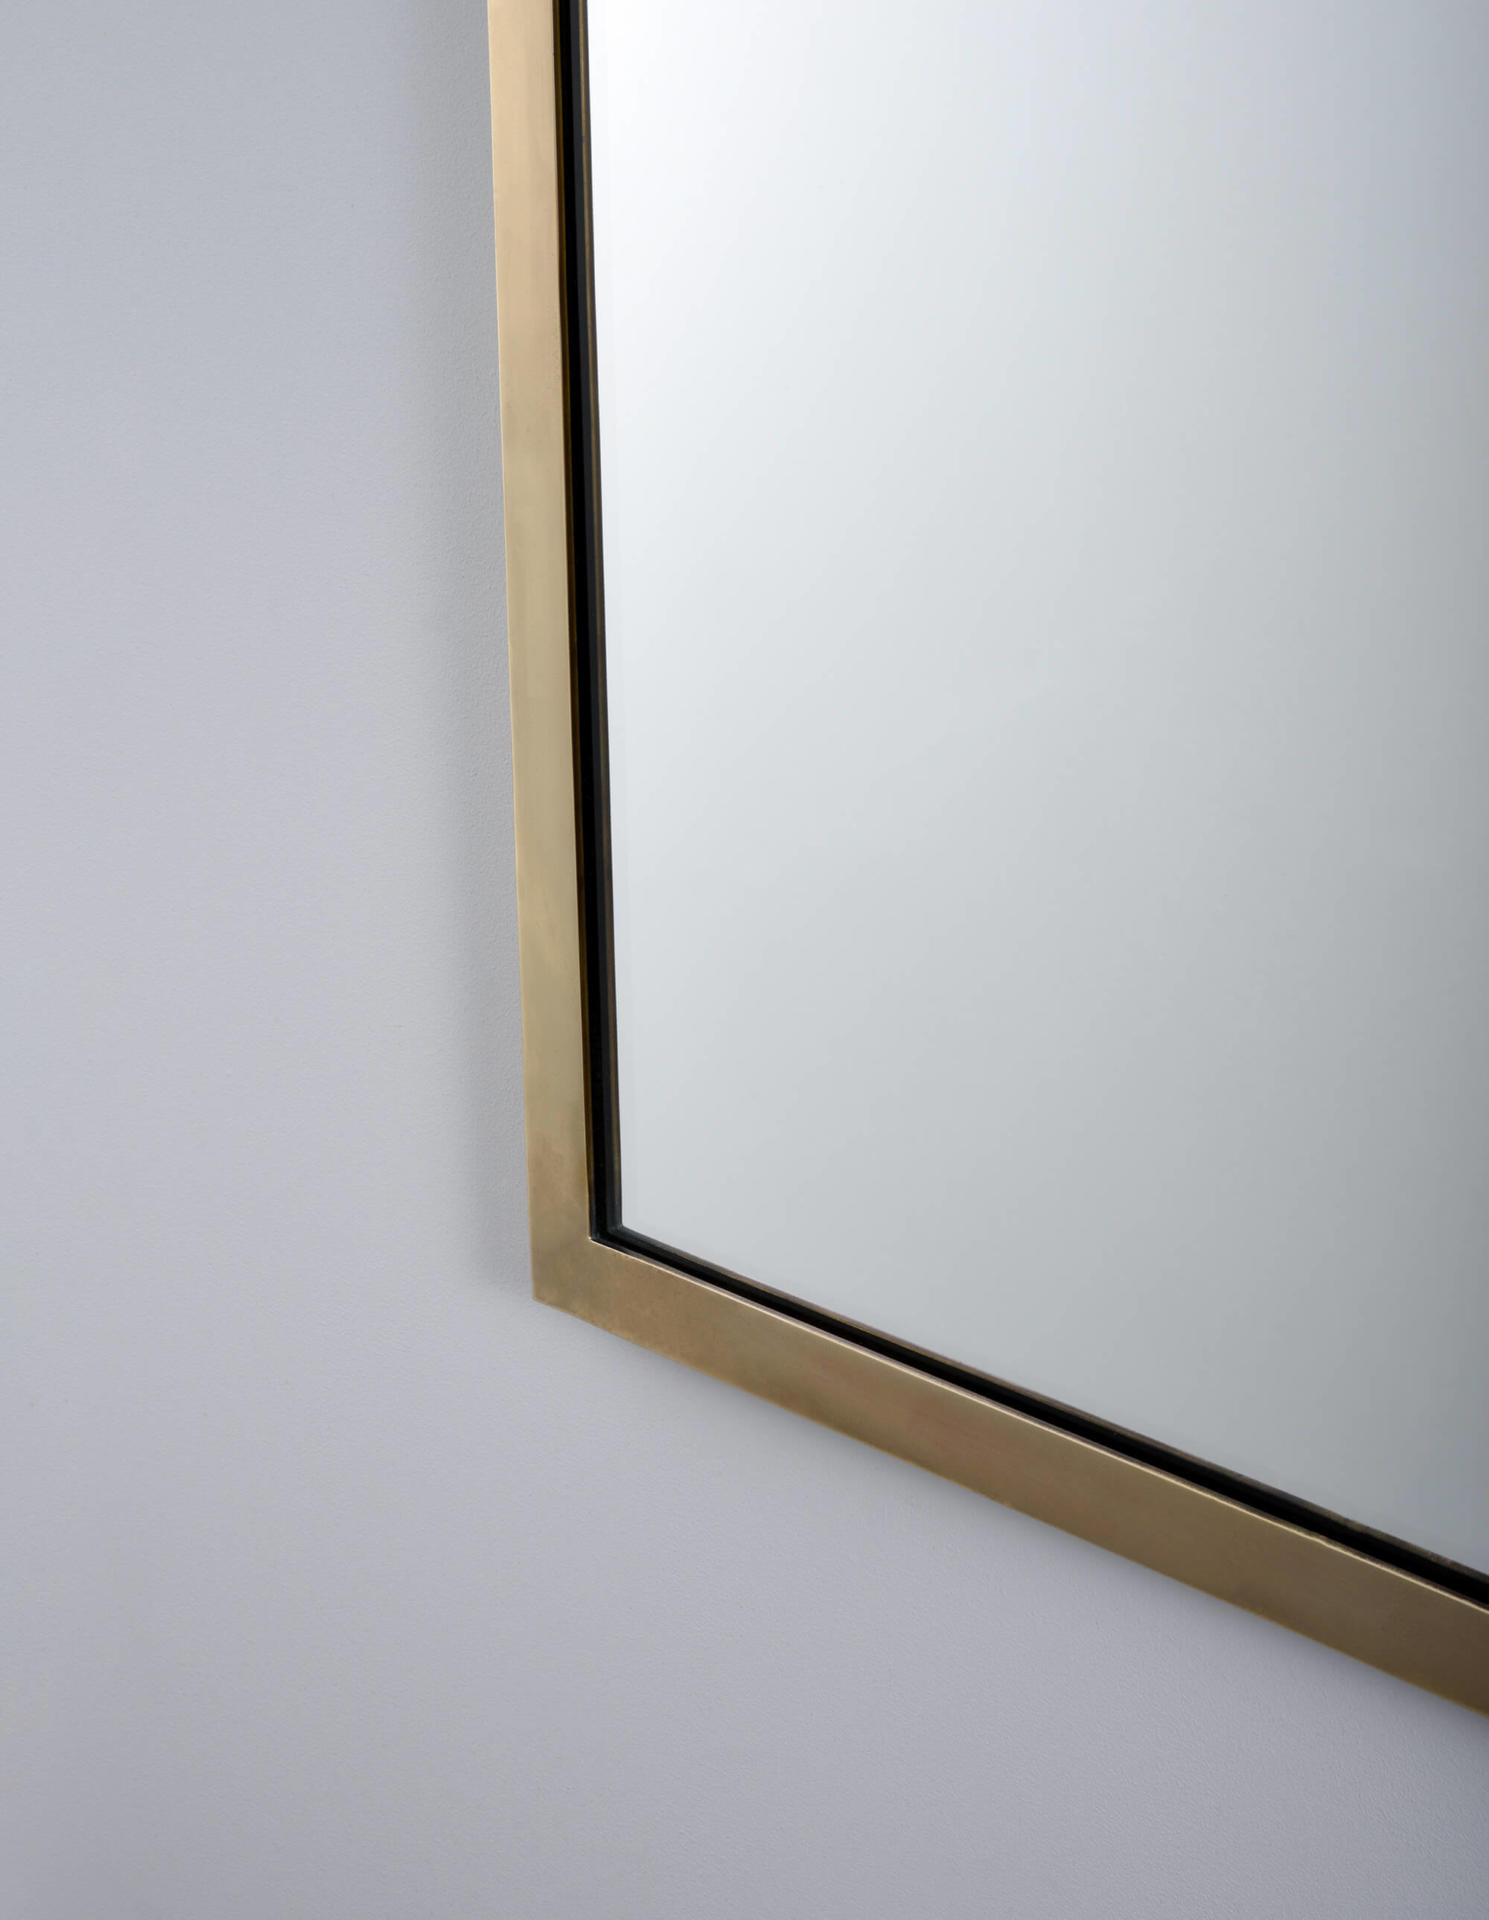 The Salon, a brass framed mirror by Collier Webb - ideal for interior design projects. Seen in our Antique Brass finish